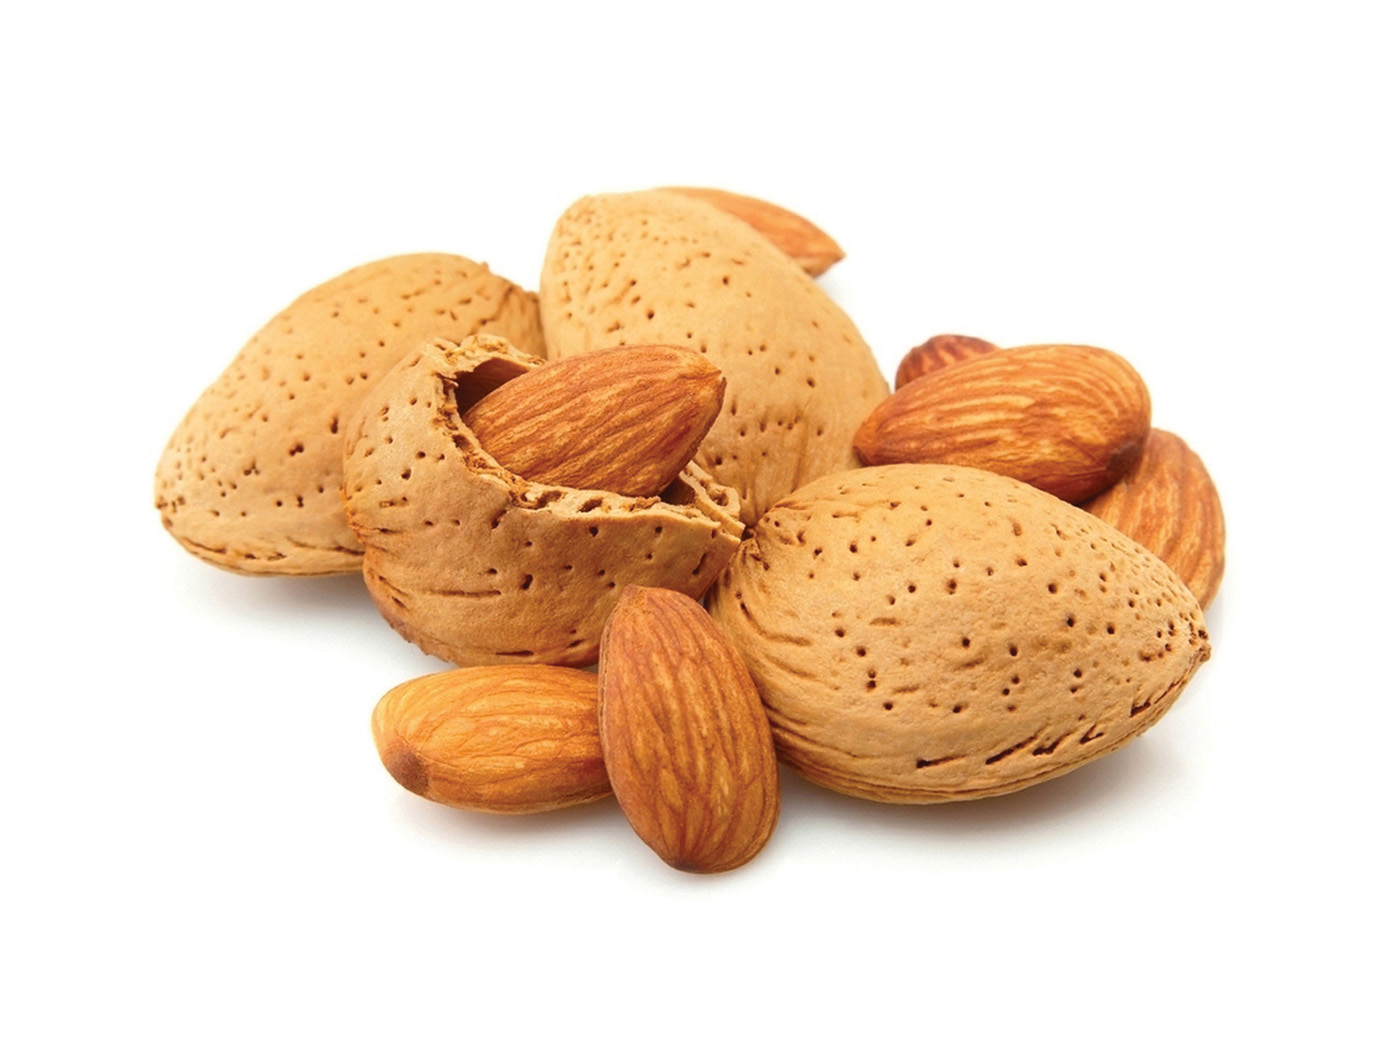 almond wallpapers high quality | download free